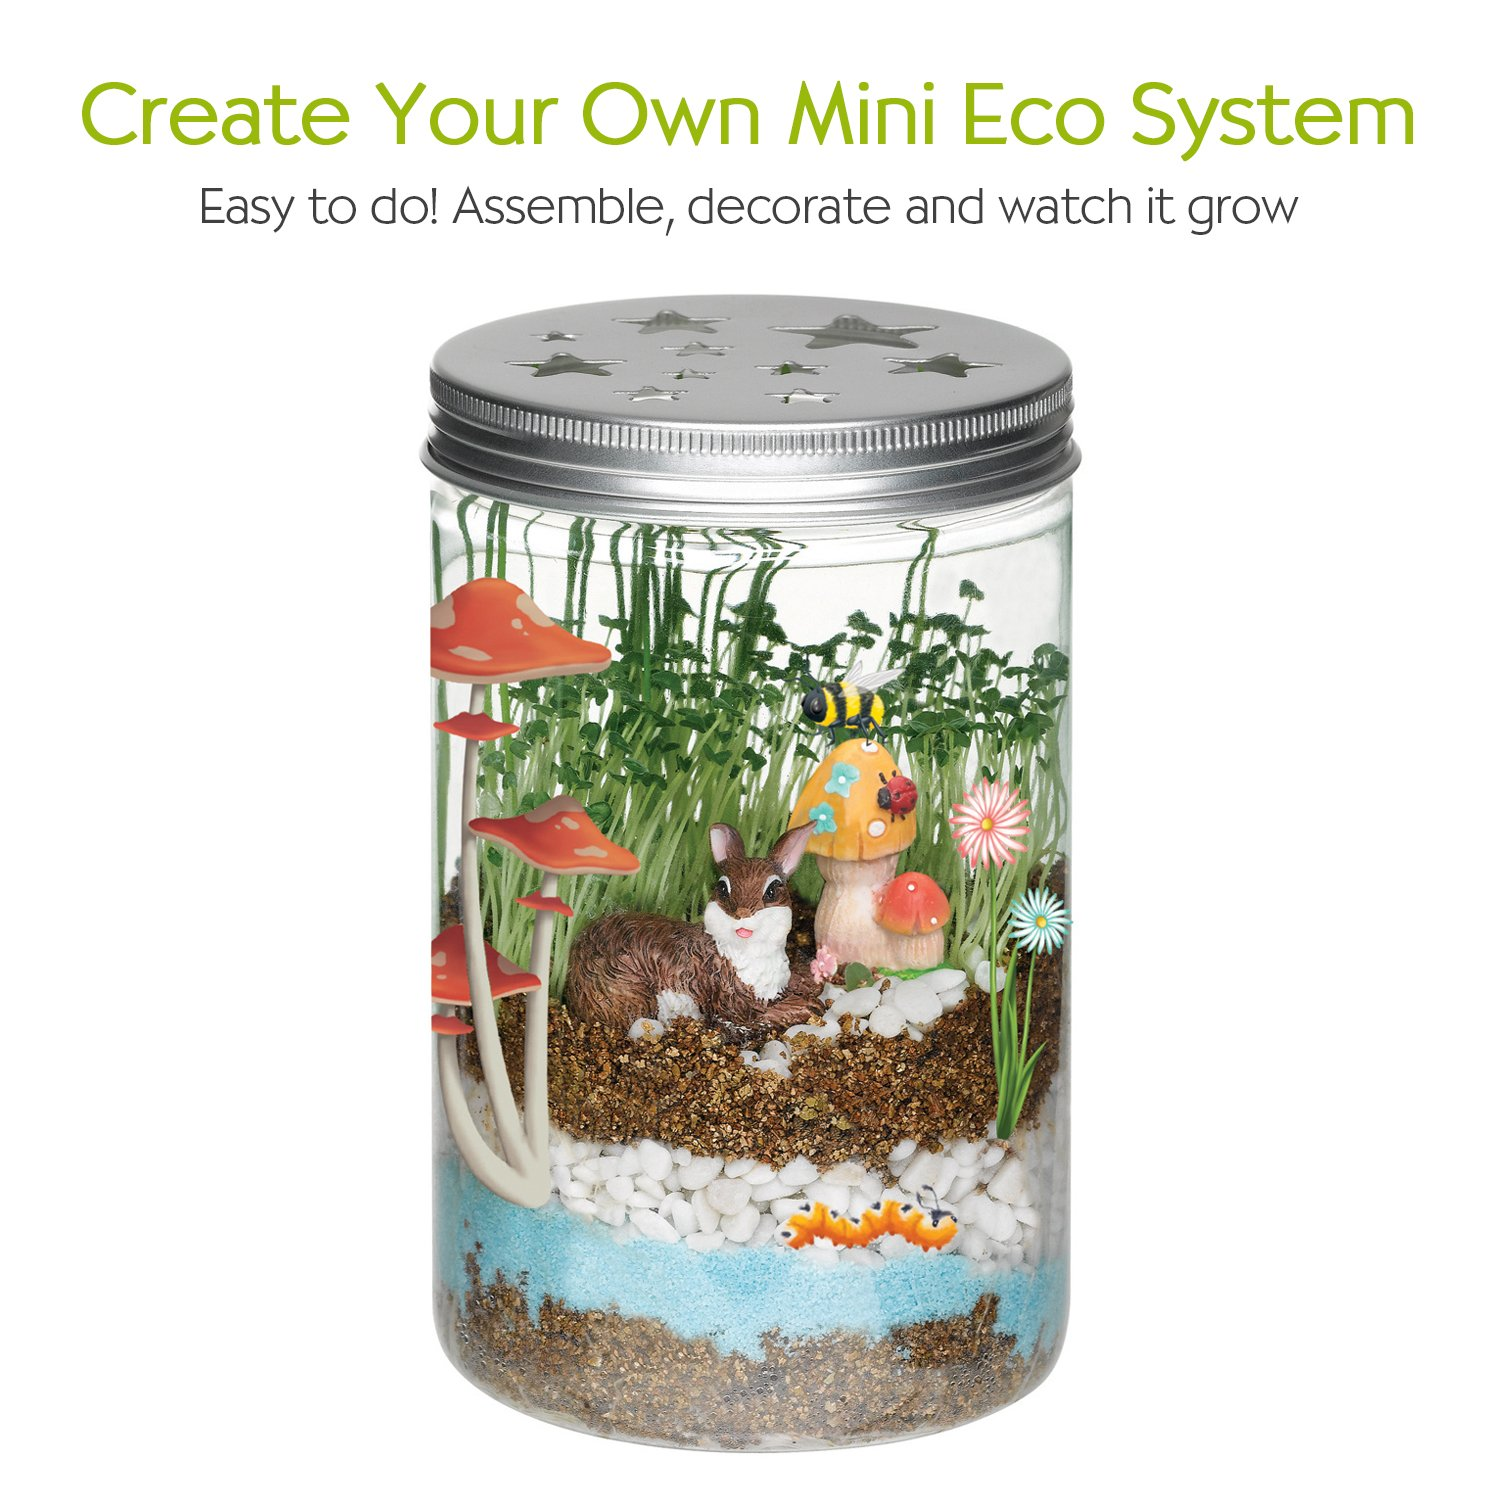 Creativity for Kids Grow 'n Glow Terrarium - Science Kit for Kids by Creativity for Kids (Image #3)